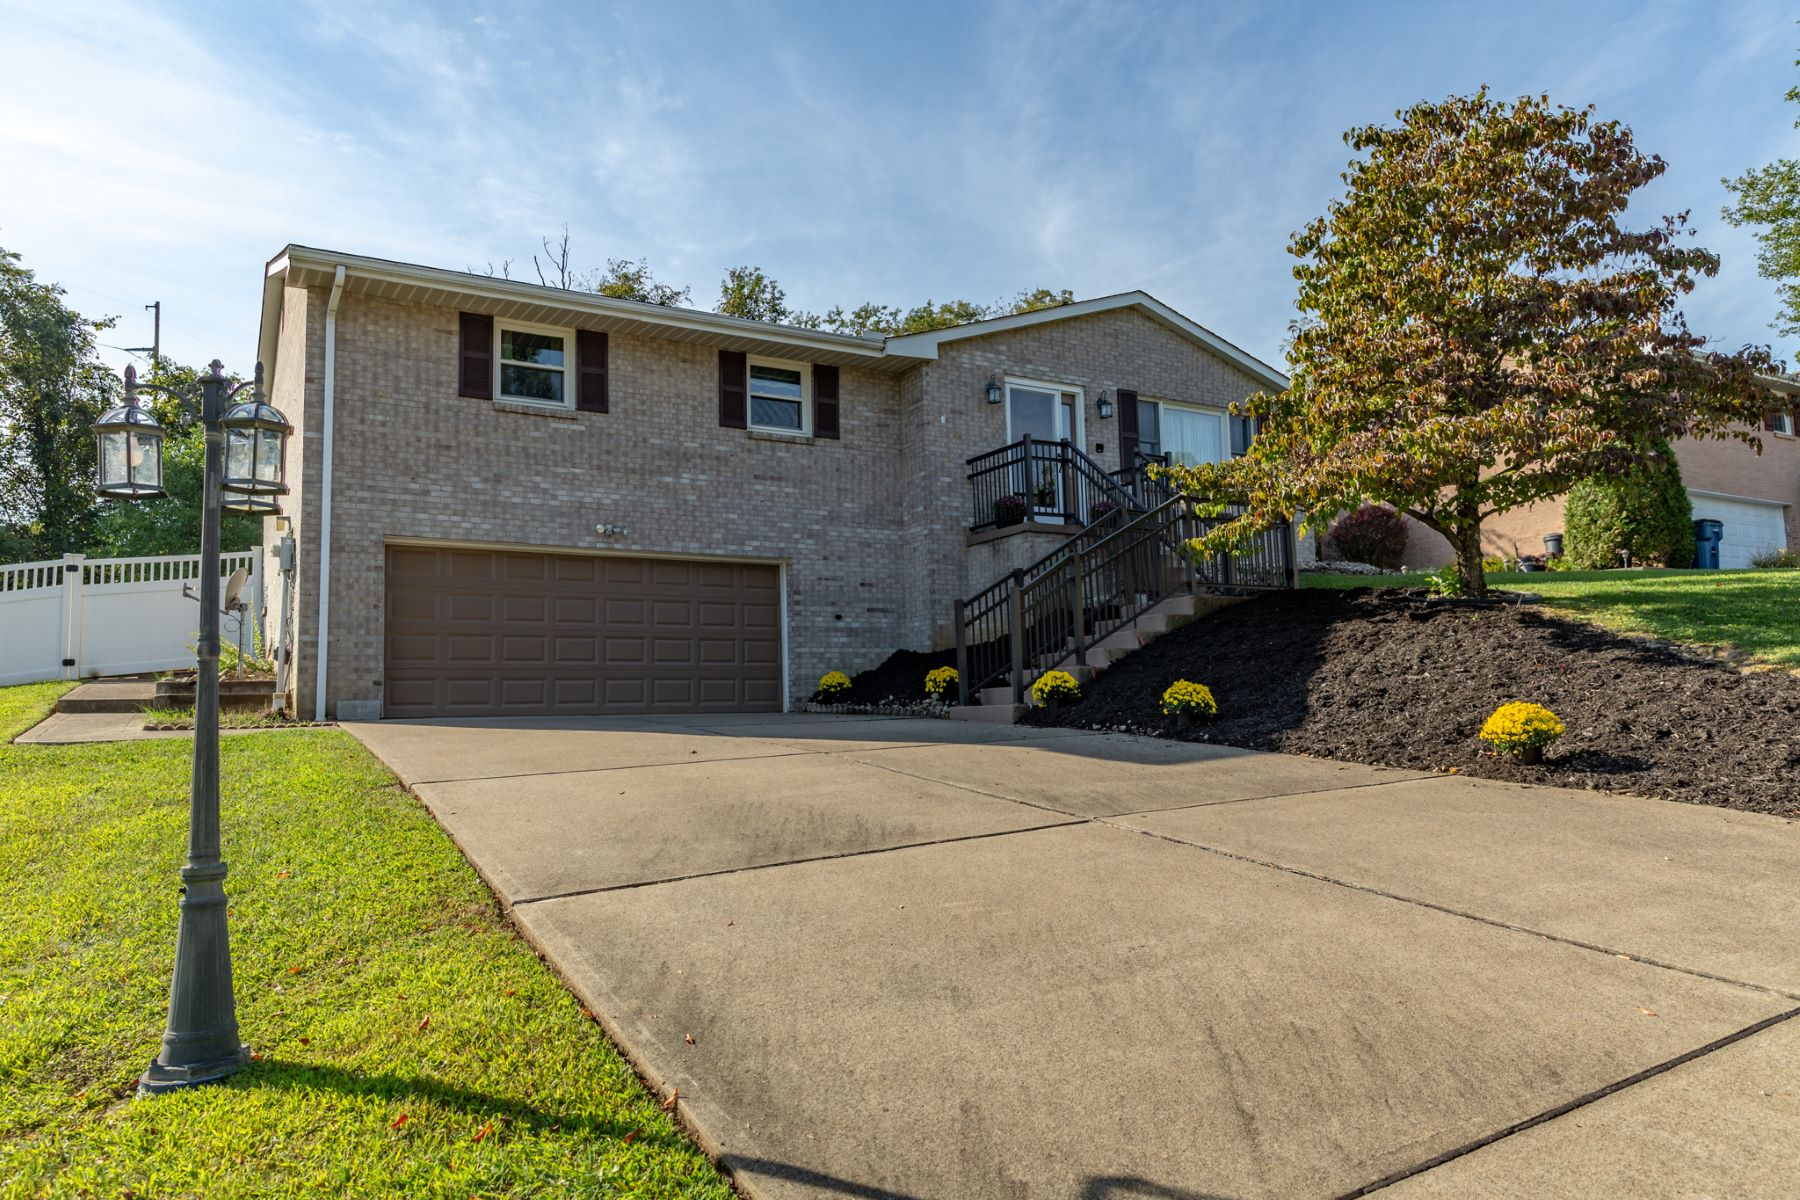 Single Family Homes for Sale at 336 Westview Court 336 Westview Ct Unity Township, Pennsylvania 15601 United States